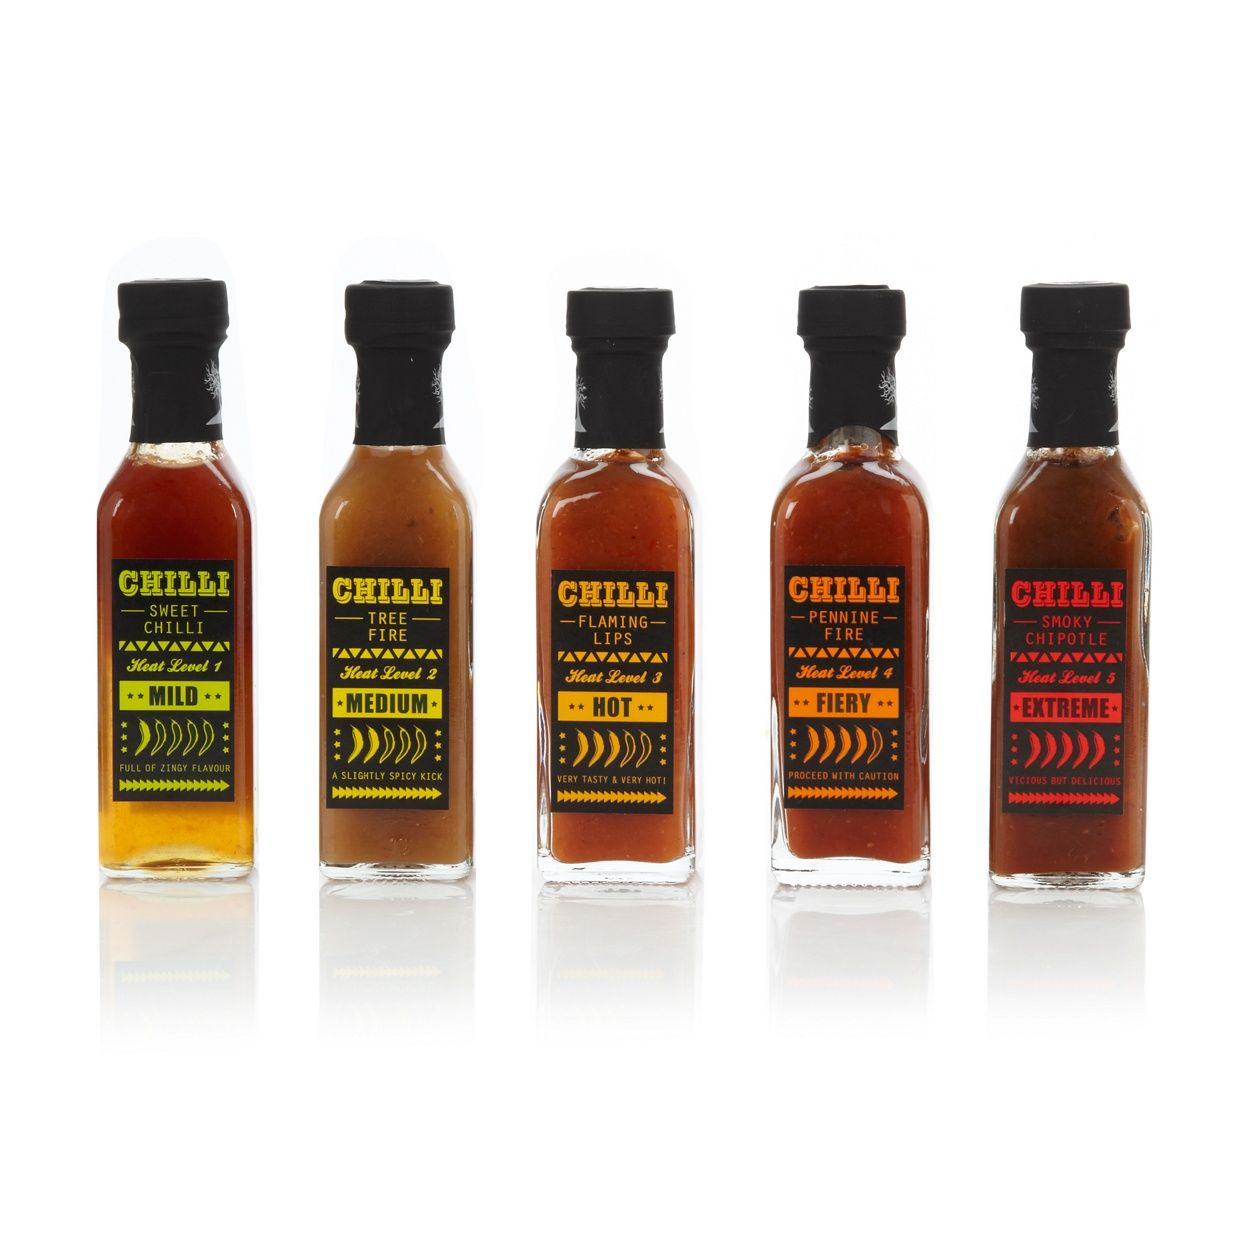 Spice up your Christmas with this collection of chilli sauce ...